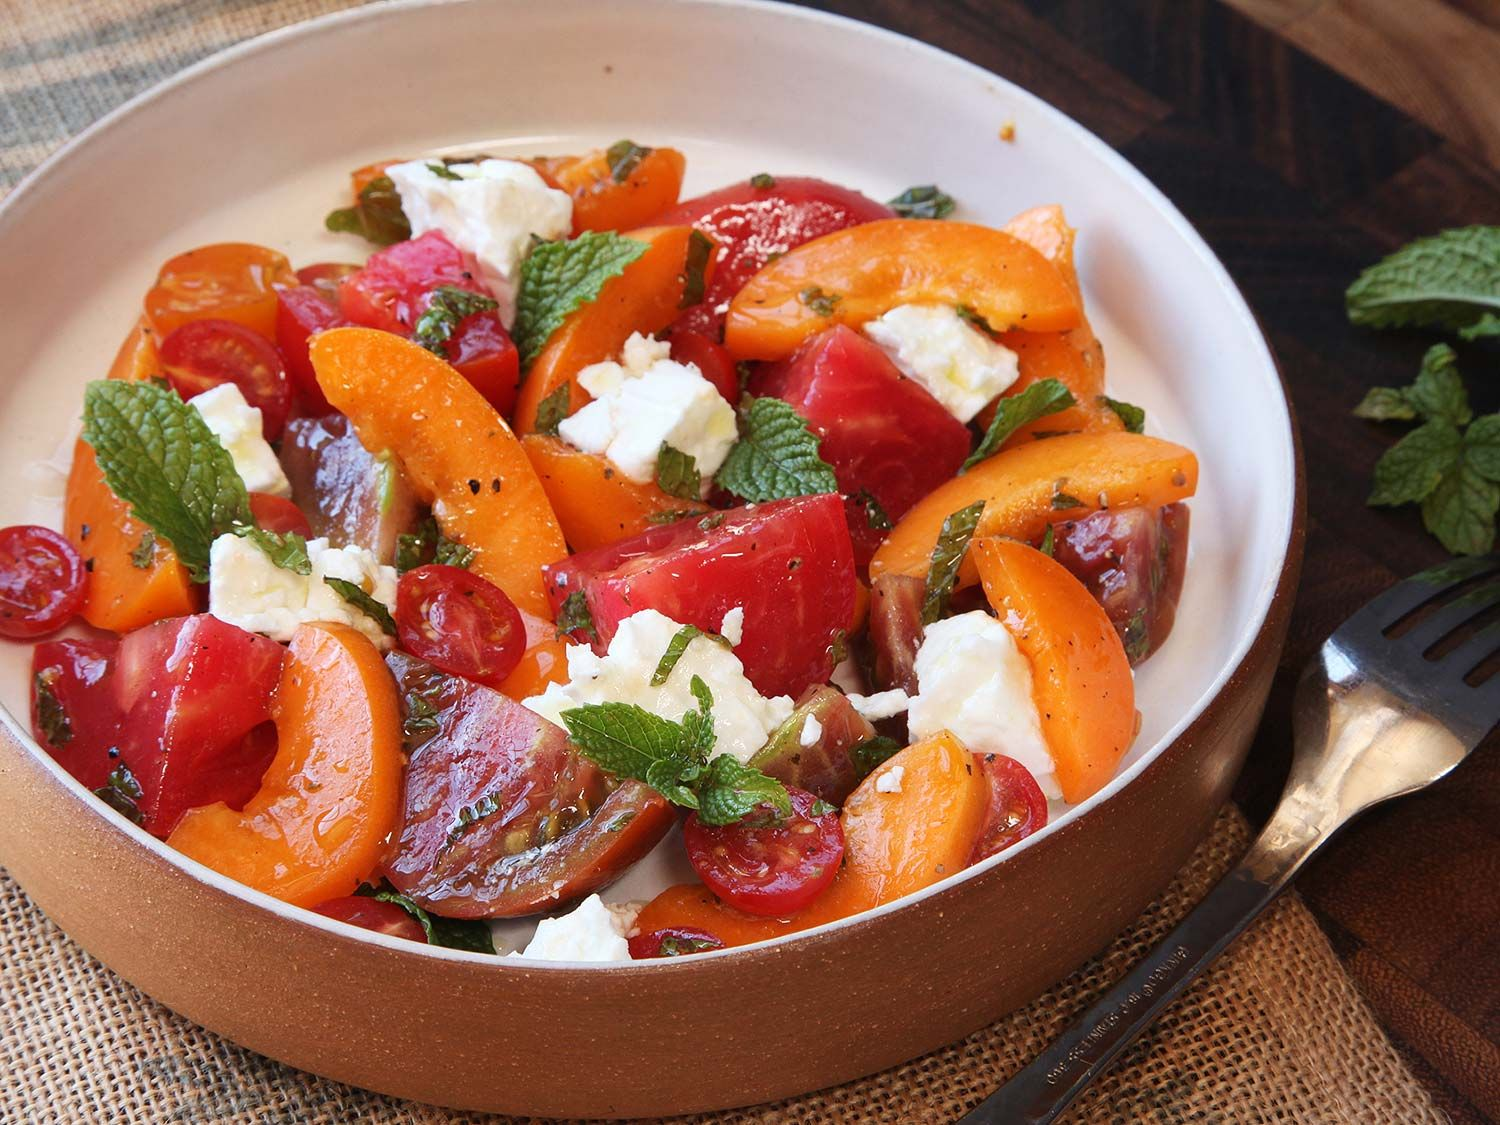 It's tough to improve on a classic Caprese salad of ripe summer tomatoes, fresh mozzarella cheese, basil, and olive oil, but it's pretty darn easy to make a nice lateral transition to something that's not quite as classic yet equally tasty. Here, I've combined those same tomatoes with sweet apricots (another of summer's treats), briny feta cheese, and mint for a take that's just as refreshing, but with a completely different personality.